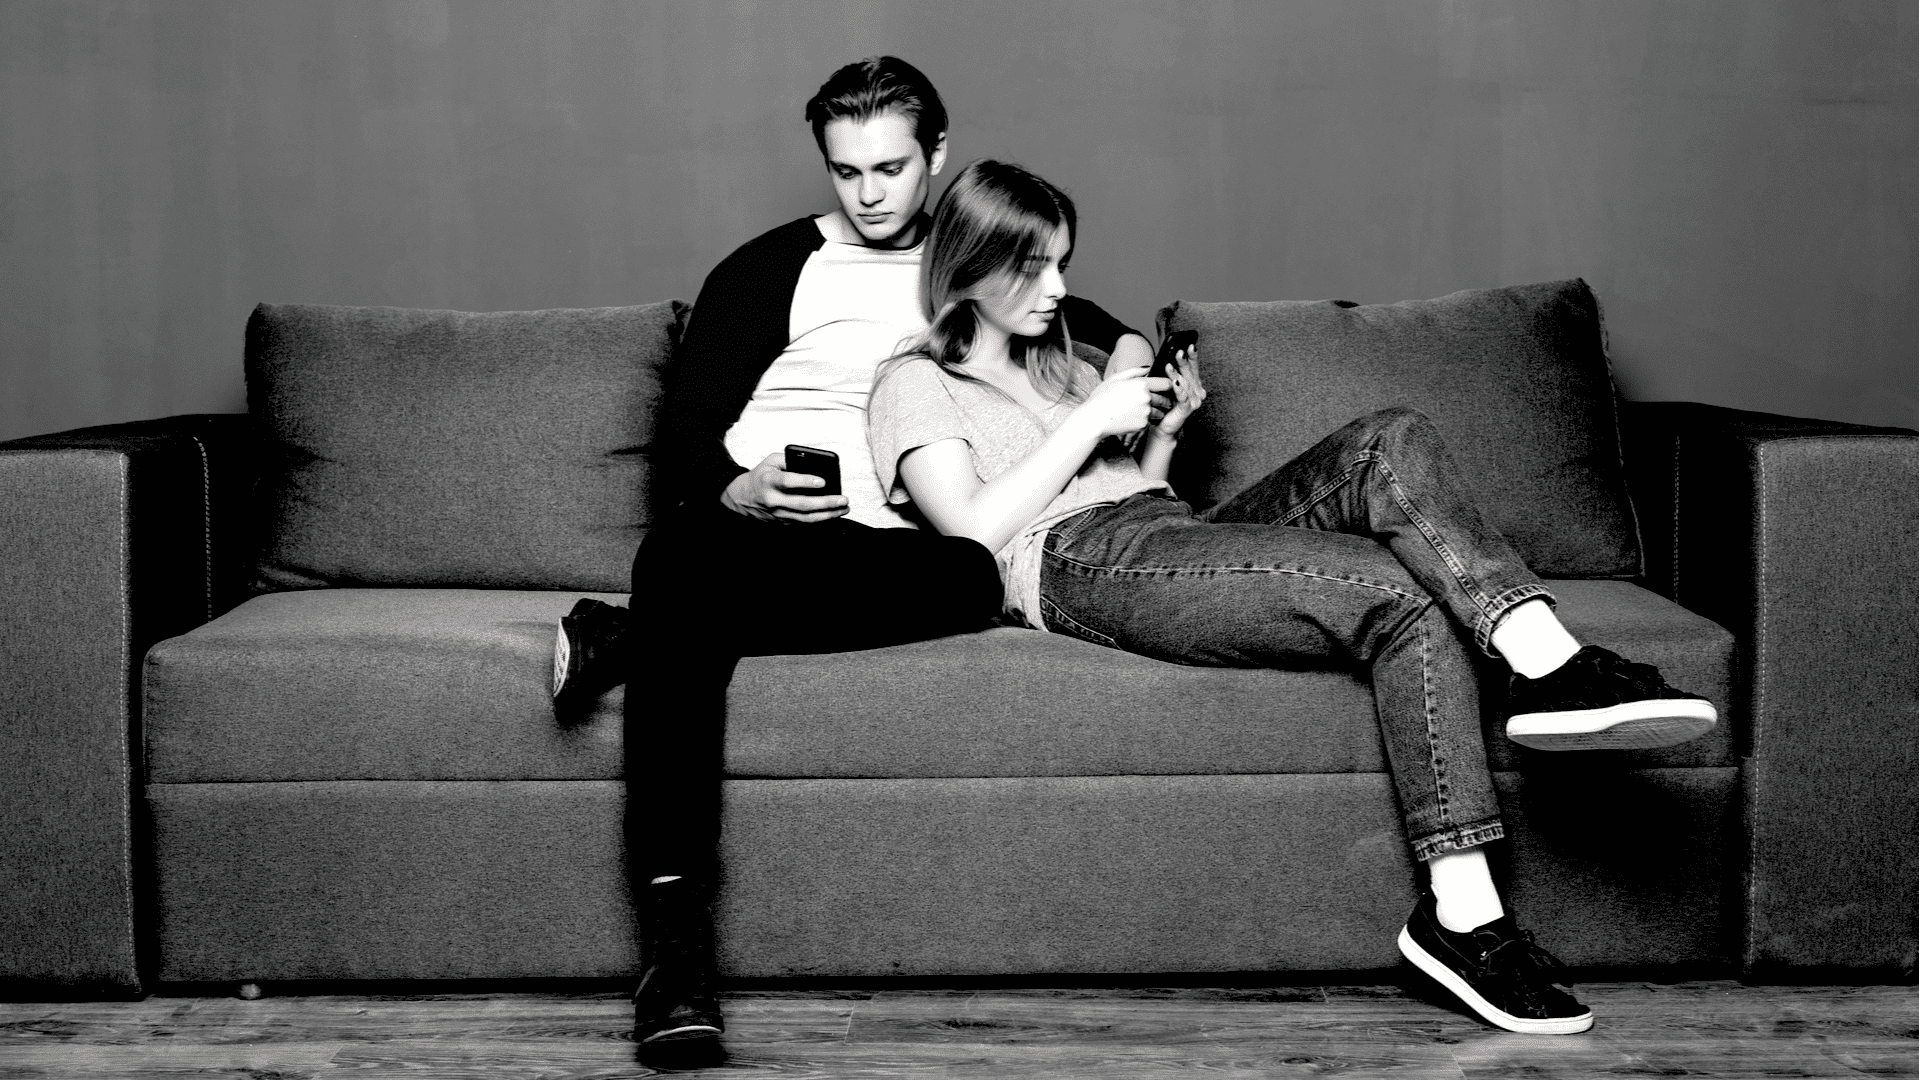 Couples Who Post About Their Relationship On Social Media Are Psychologically Problematic 10